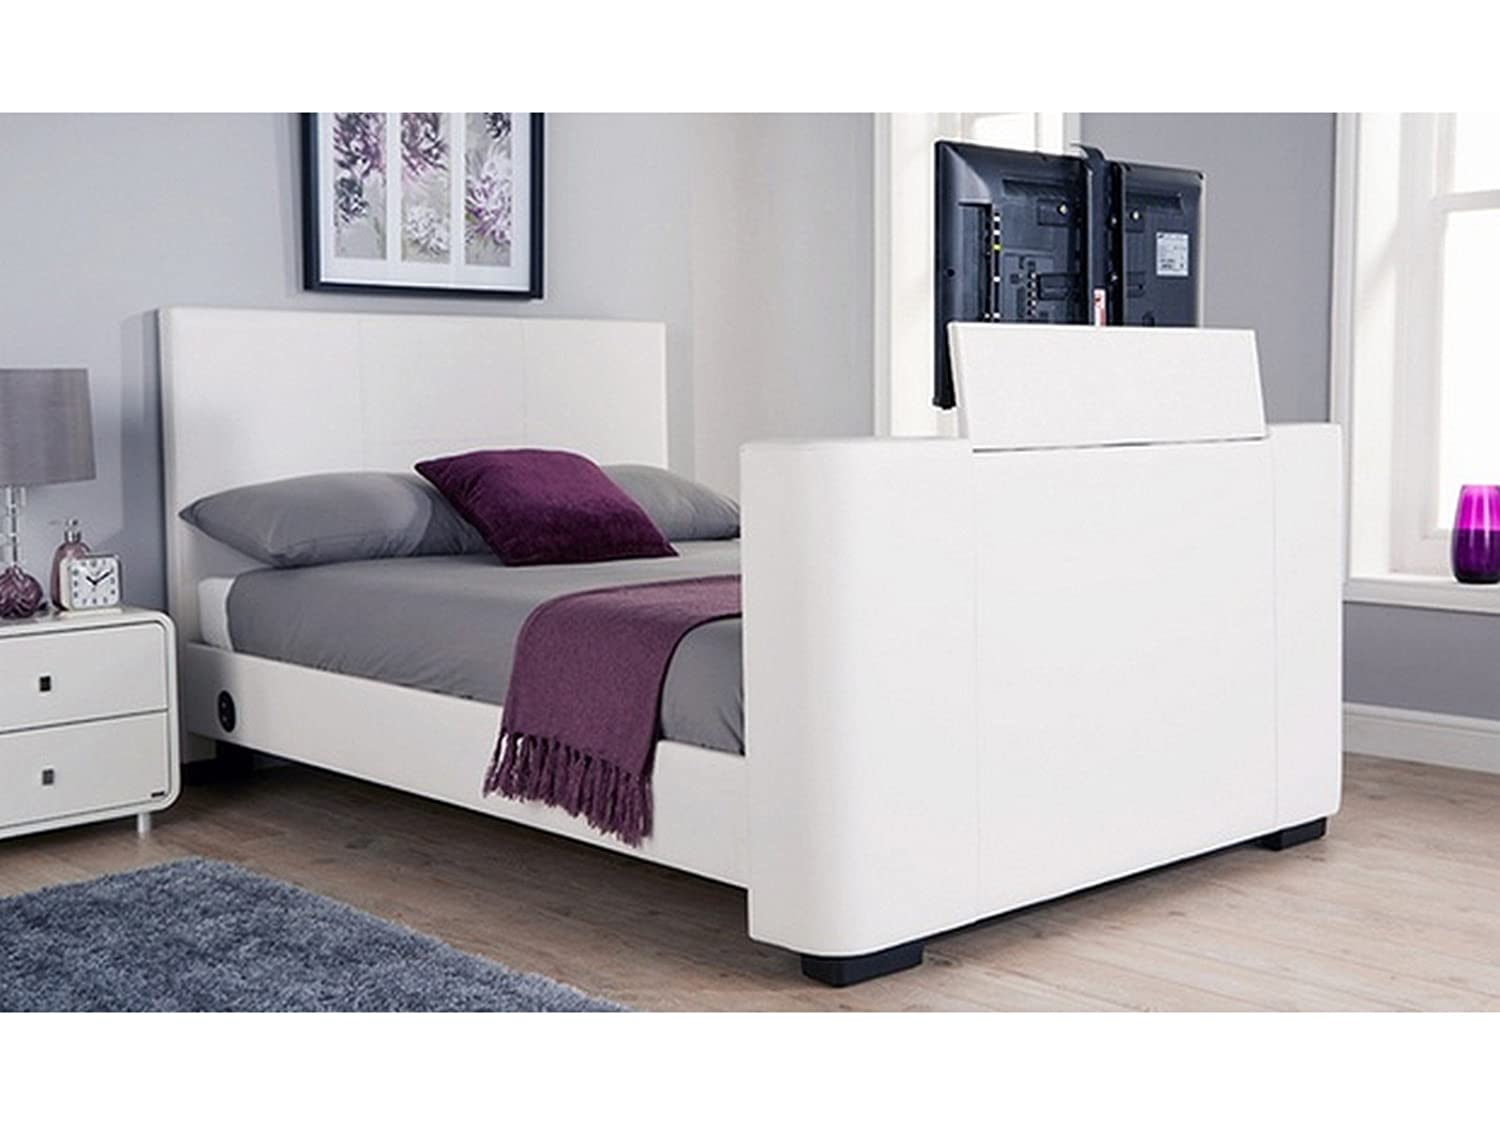 Newark 4ft6 Double Faux Leather Electric TV Bed - White: Amazon.co.uk:  Kitchen & Home